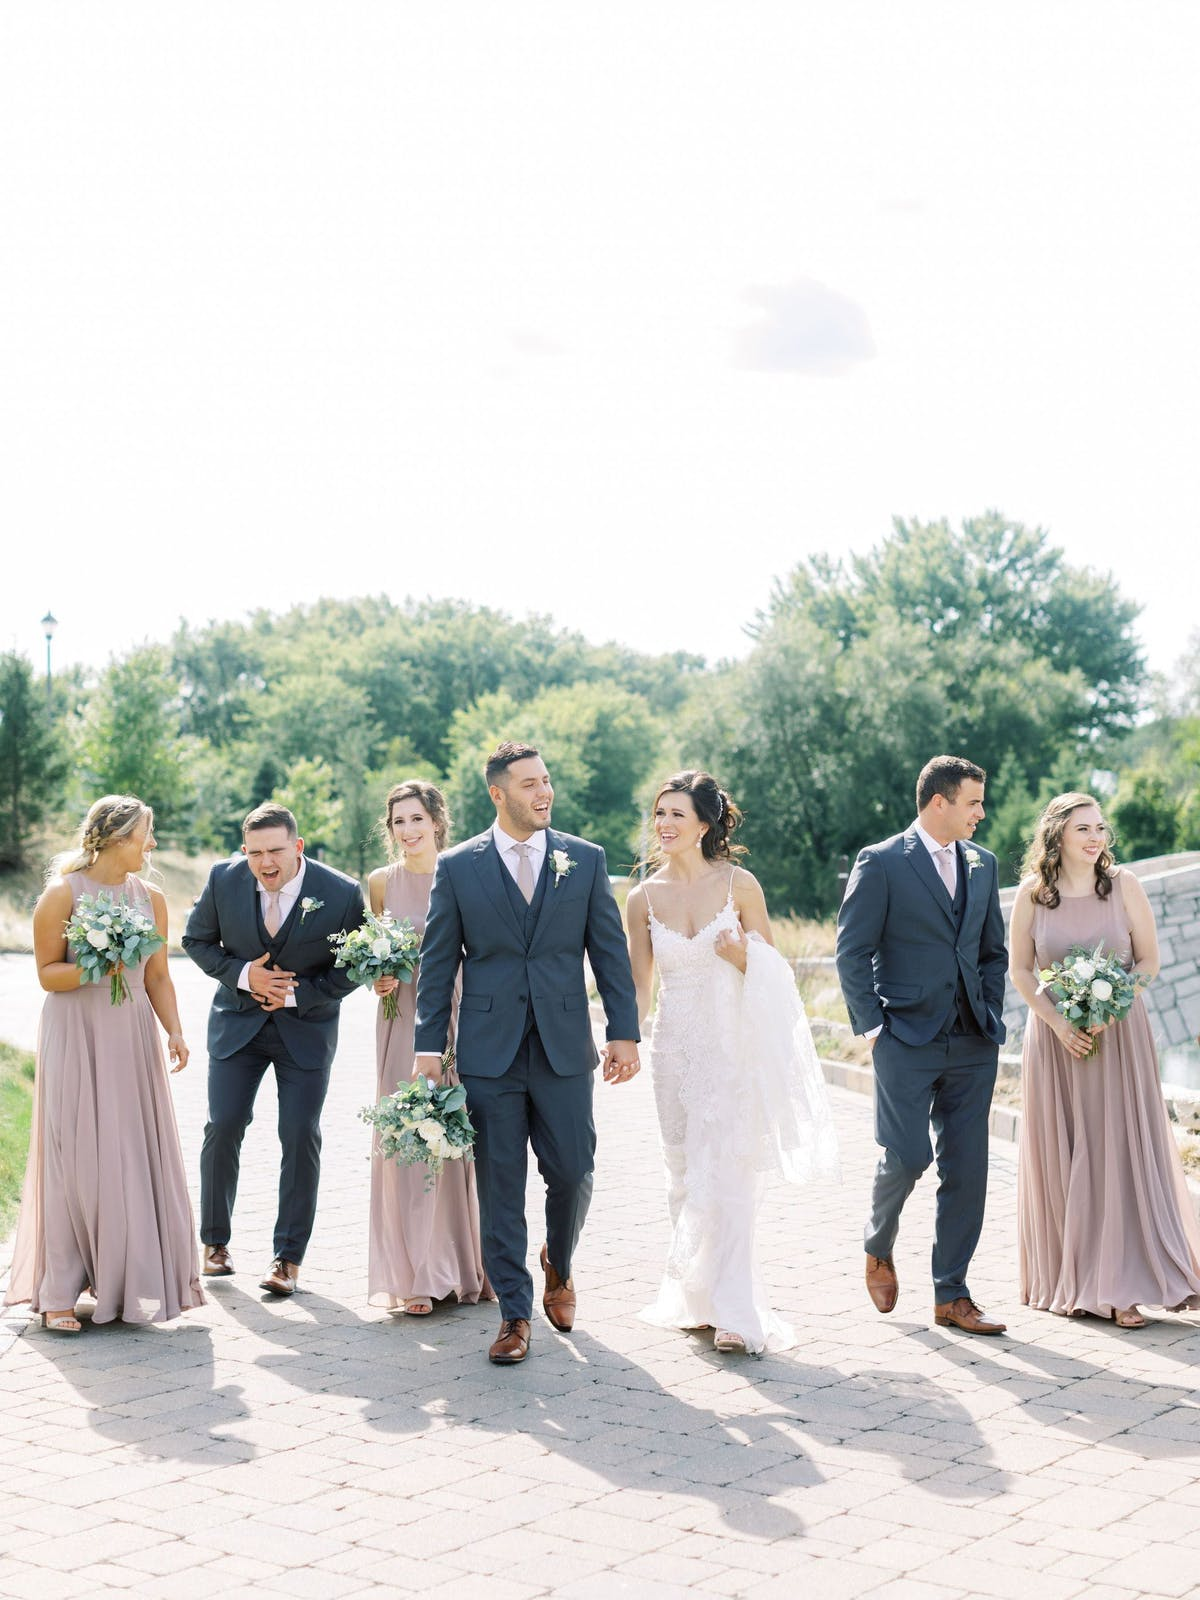 Tom & Mary - Real Weddings by Suit Shop!